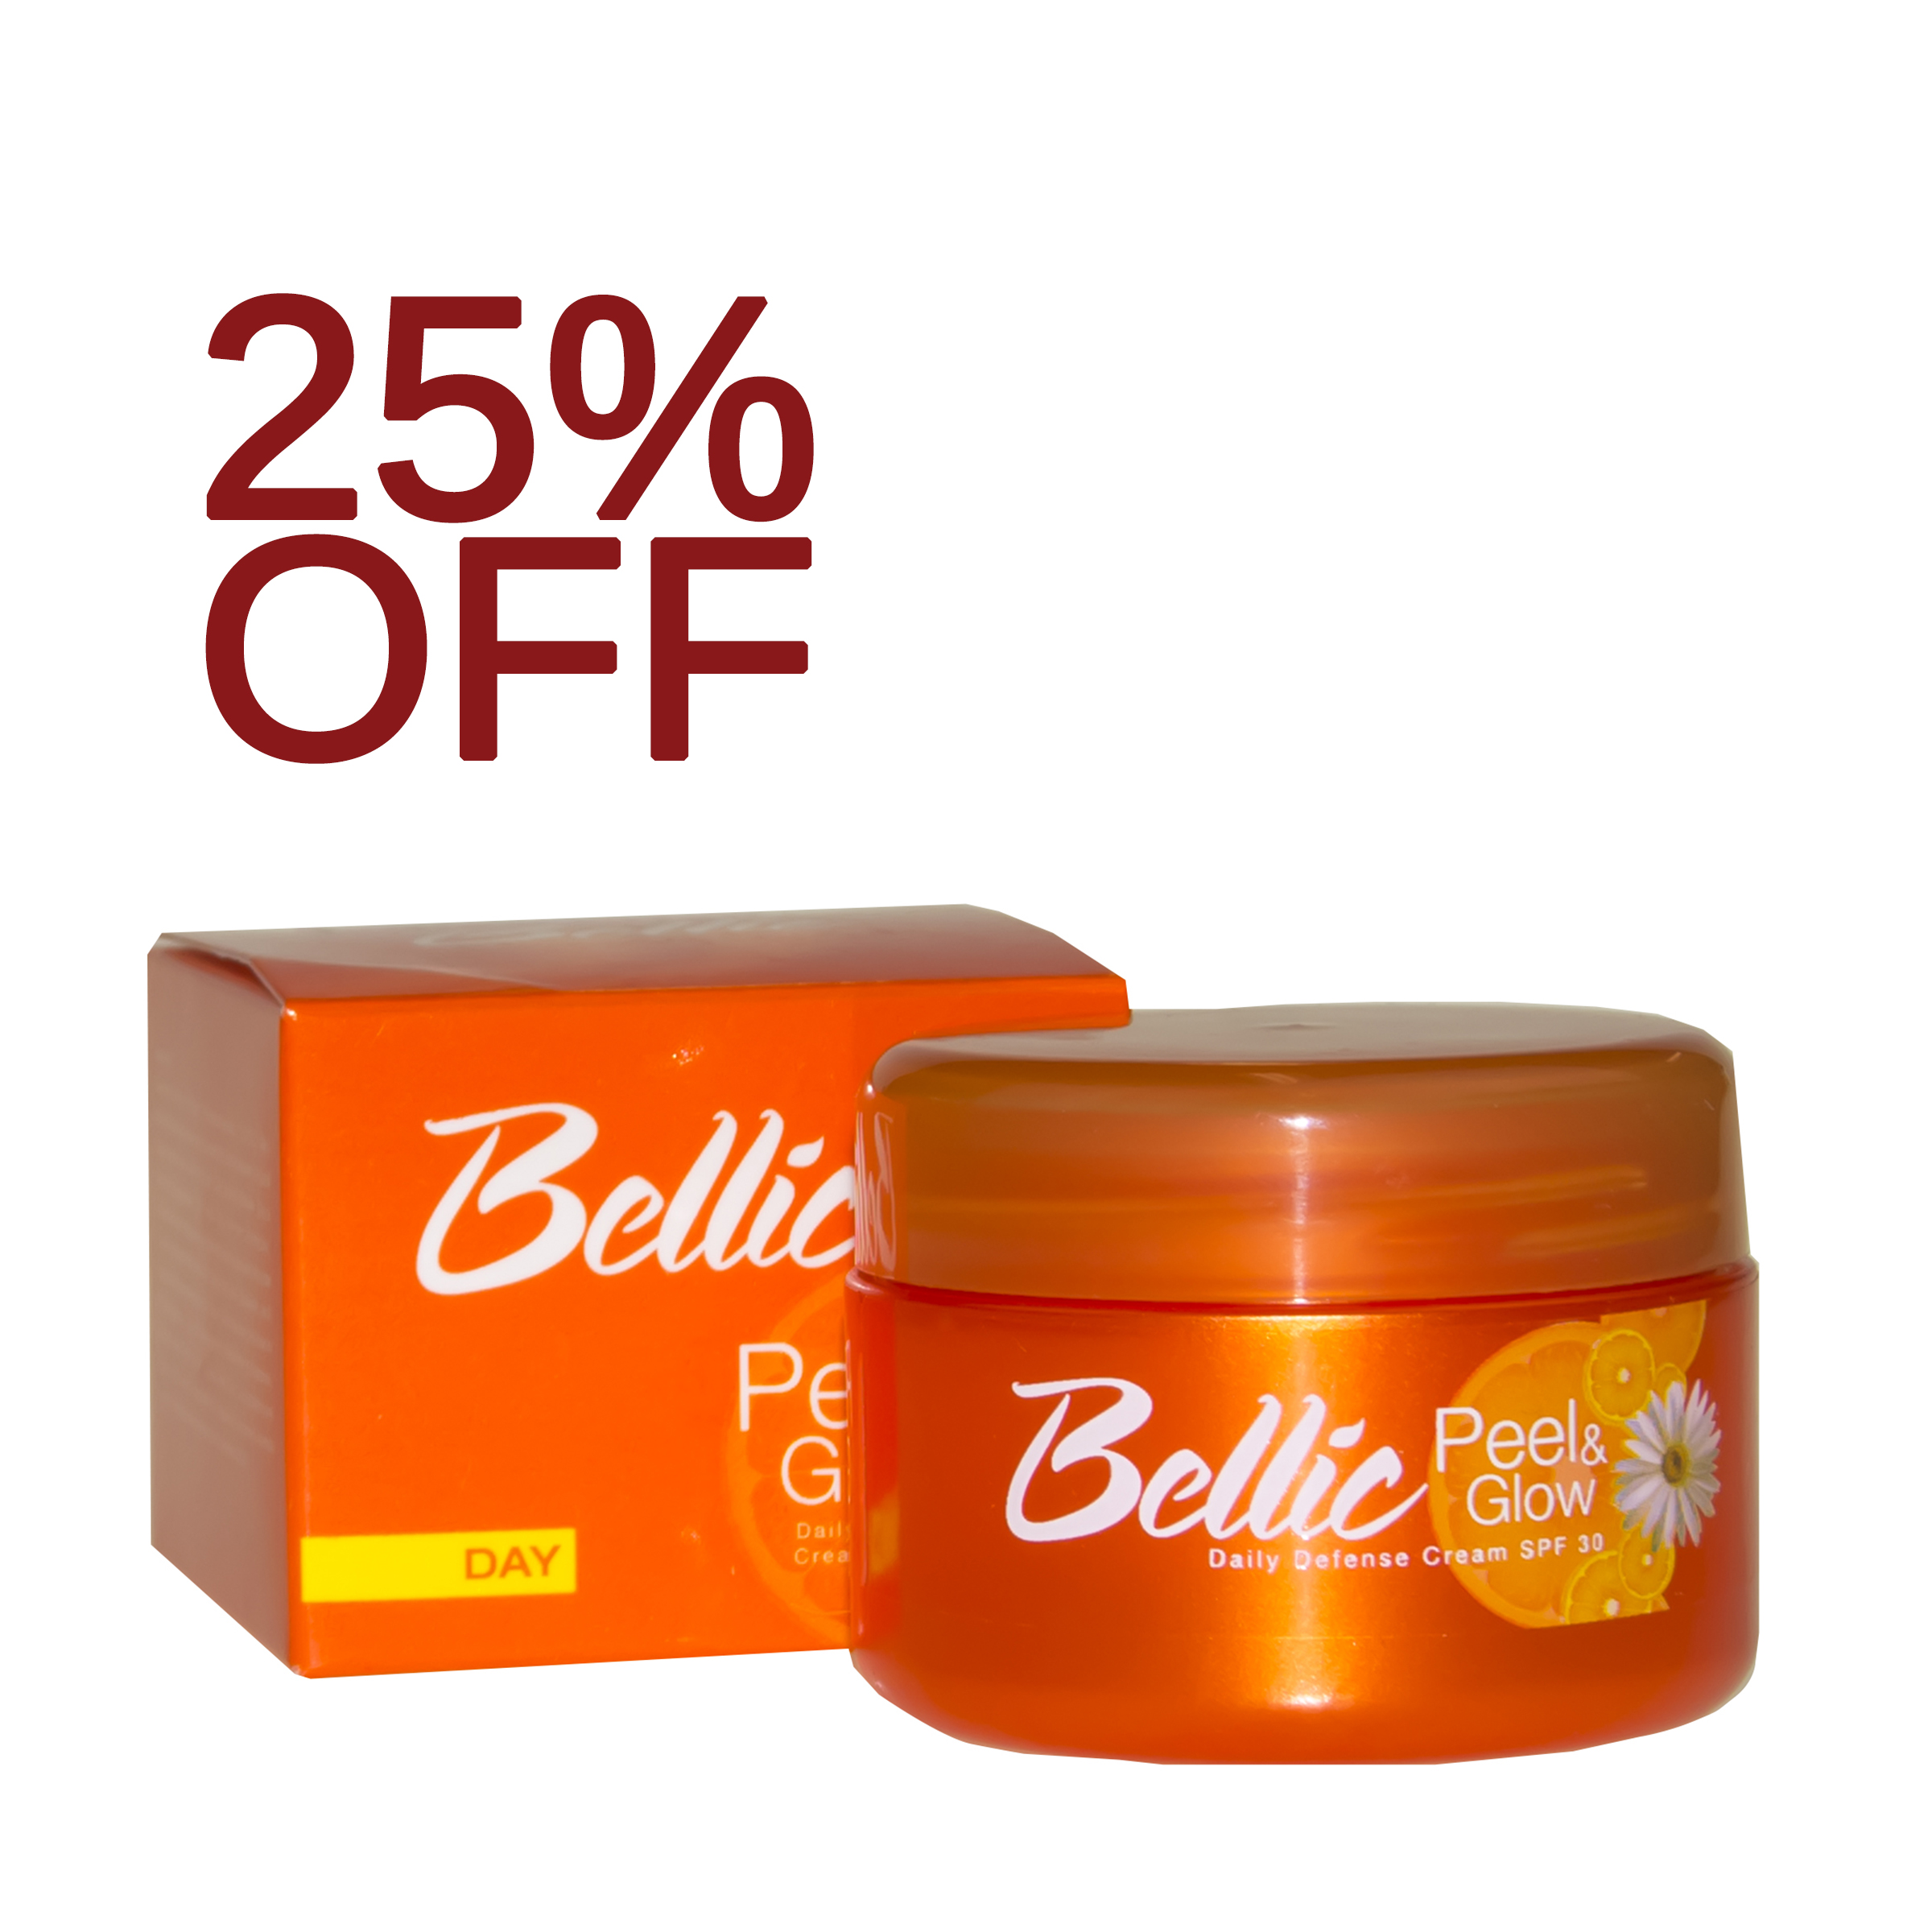 Bellic Peel and Glow Daily Defense Cream - Whiten, Renew and Protect Skin!